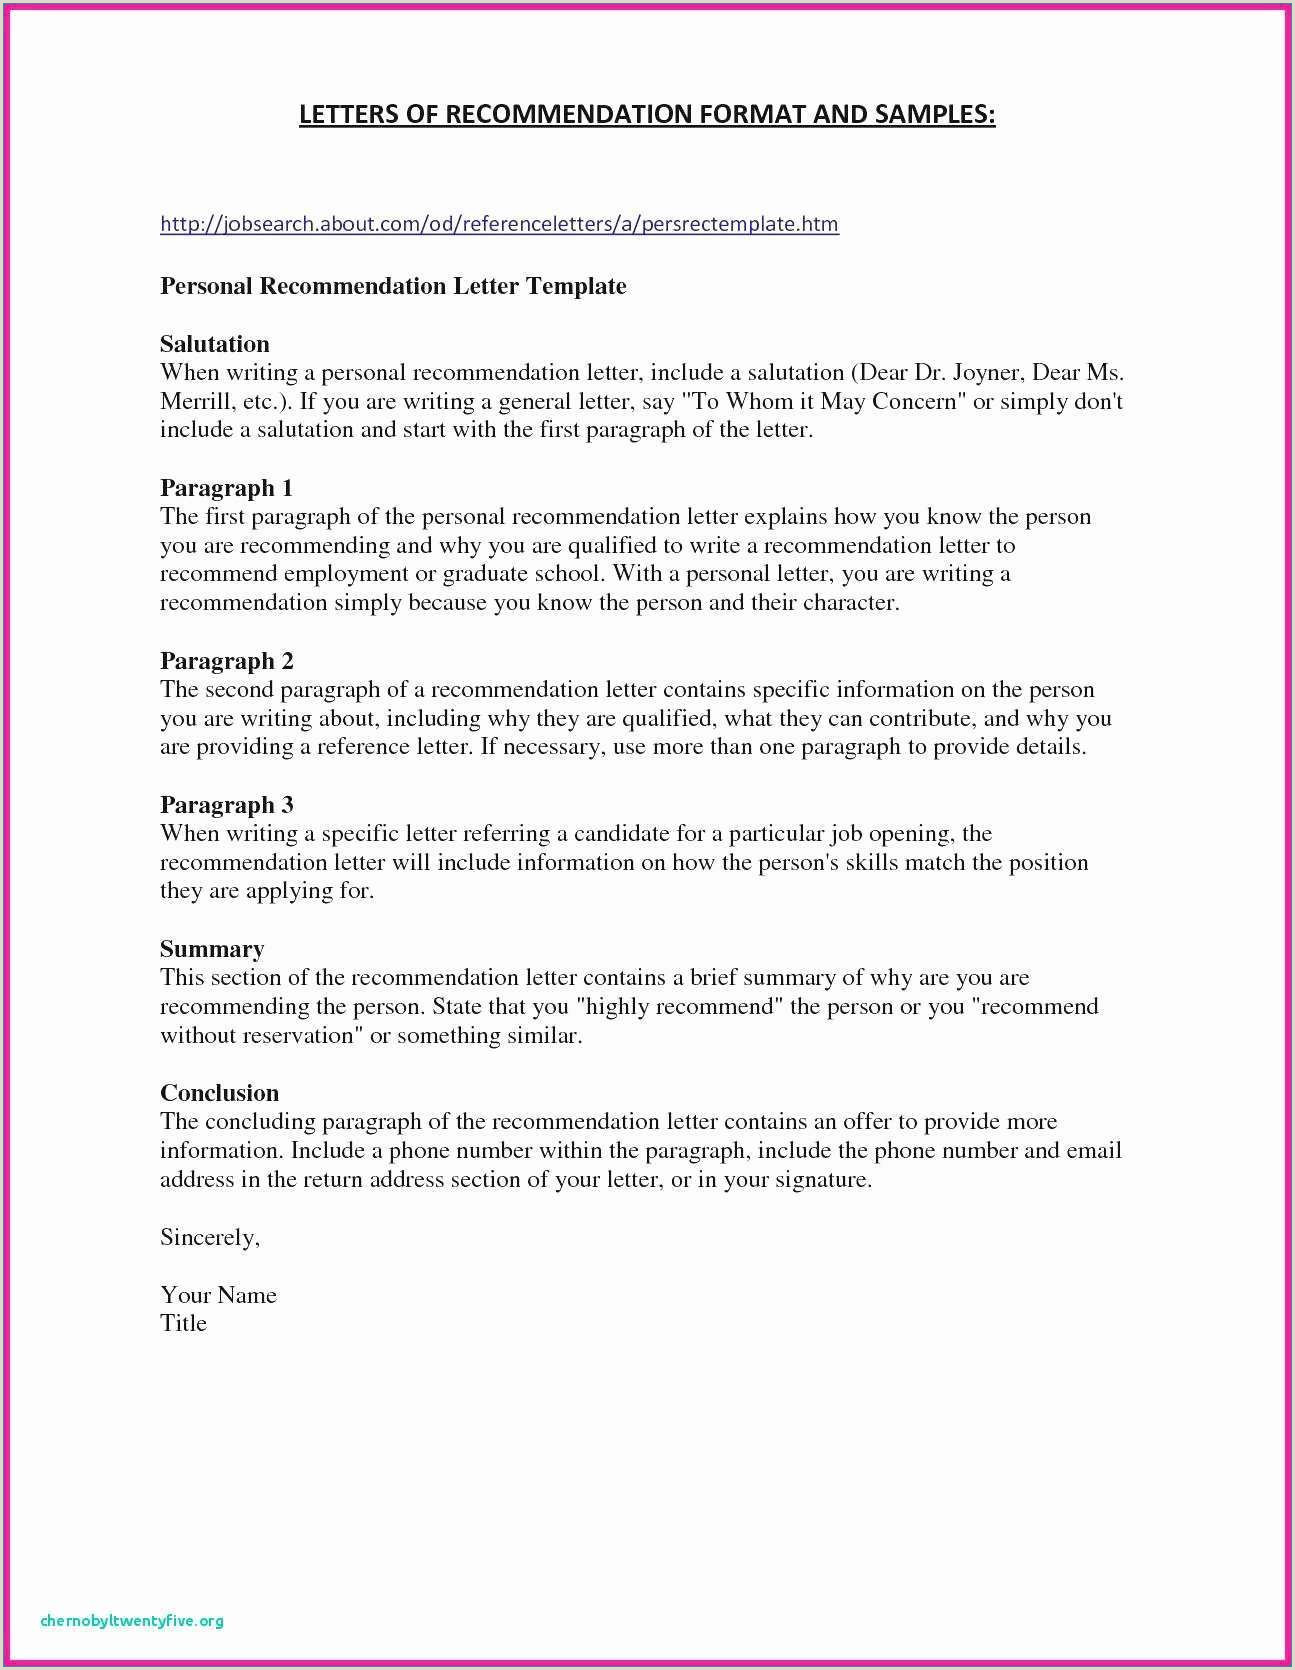 10 project manager cover letter samples